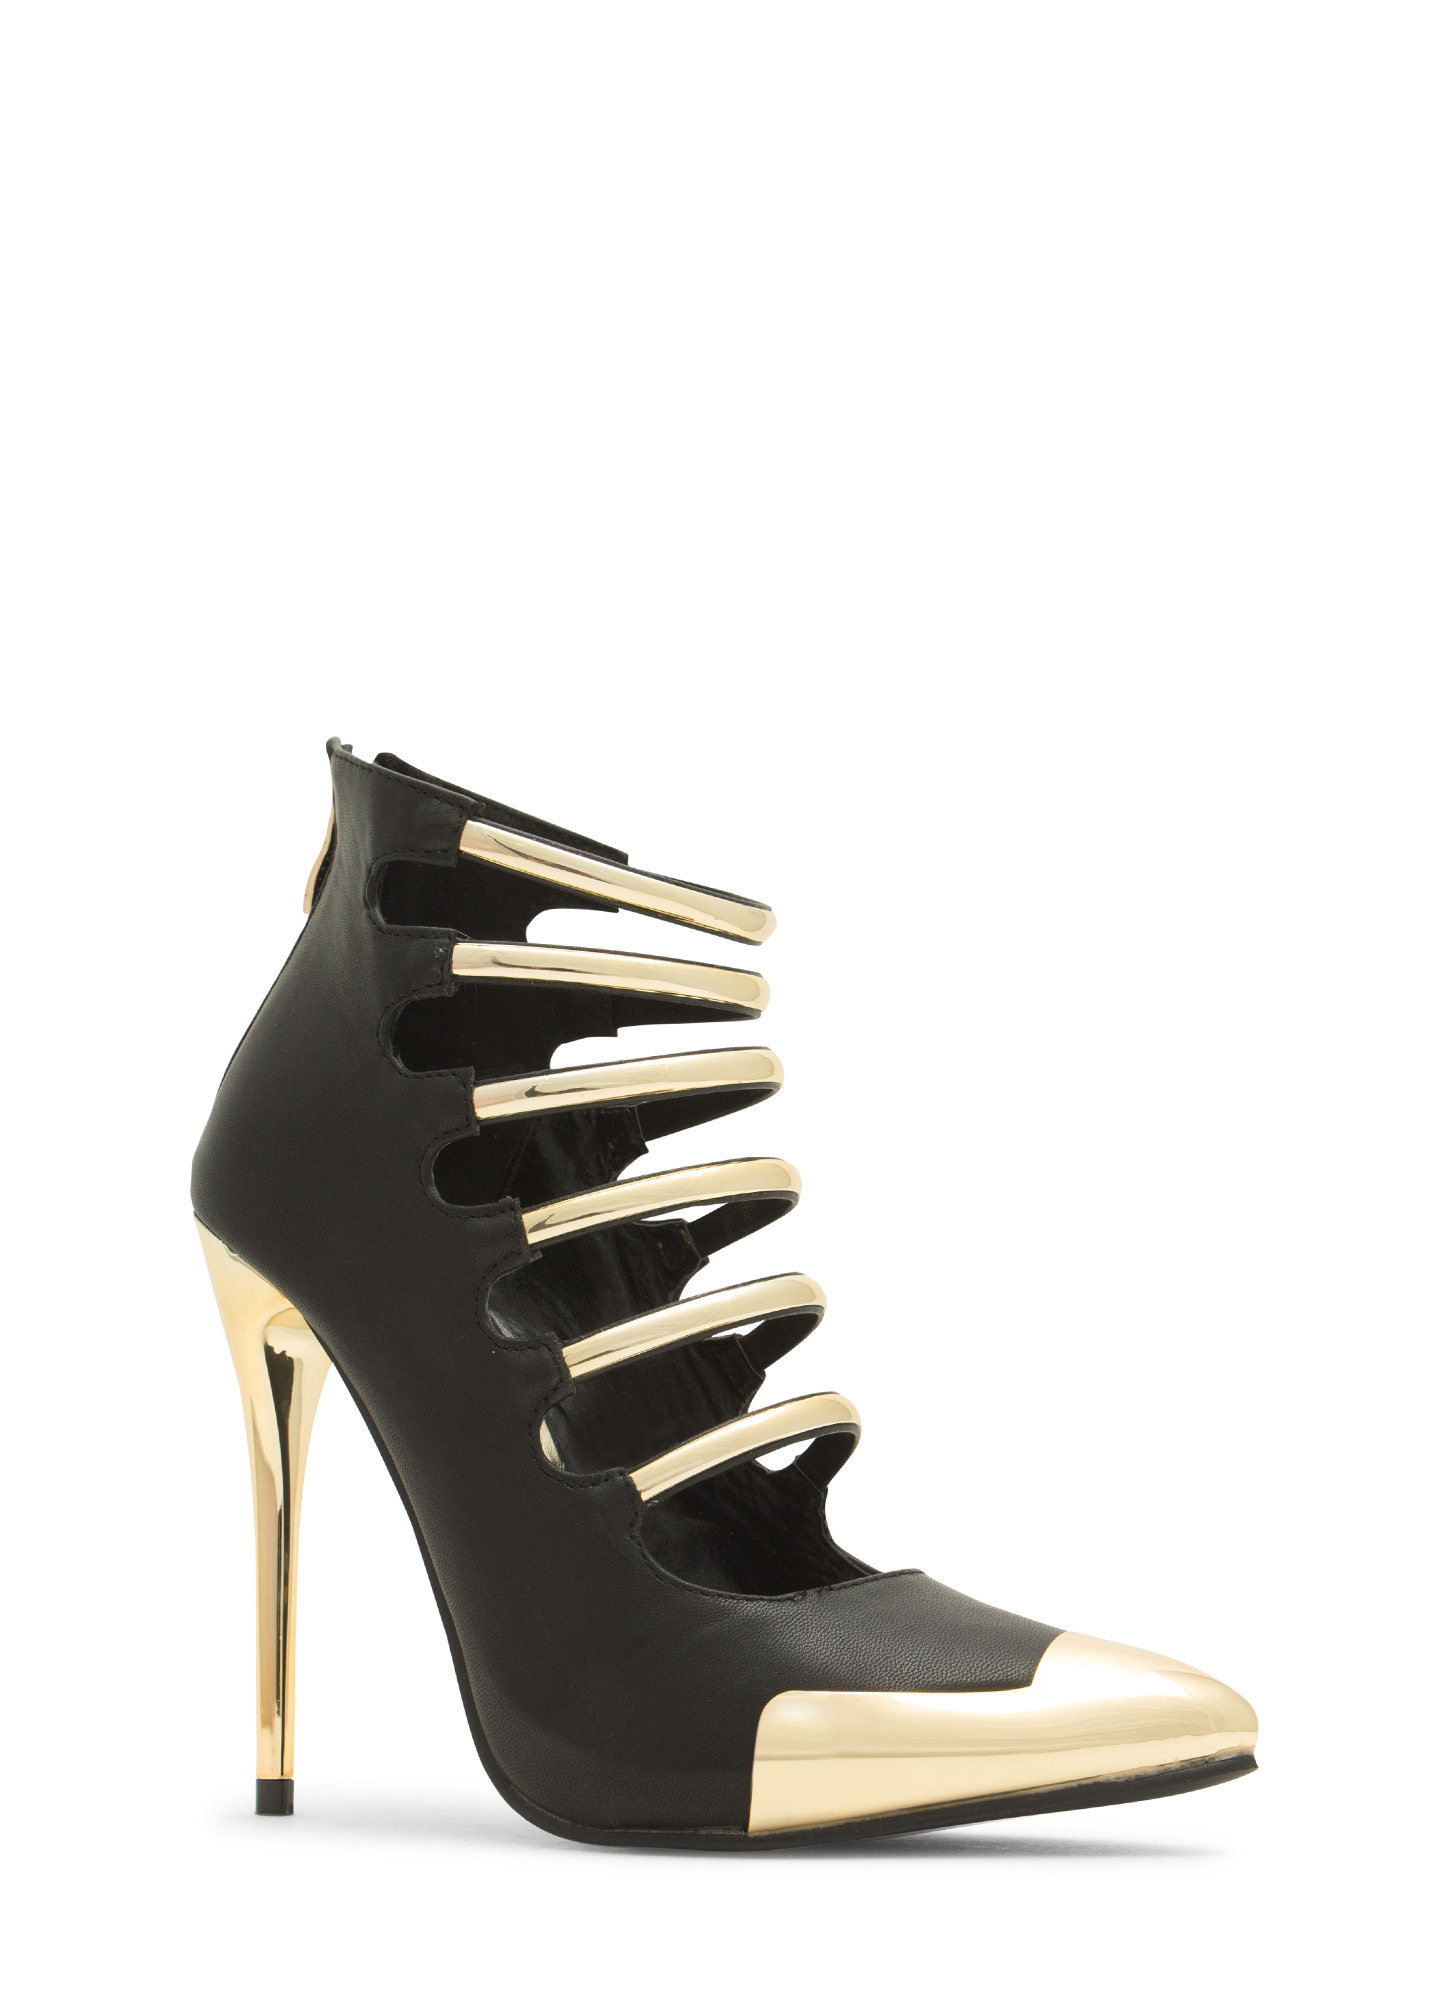 Laddered Gleam Capped Heels BLACK